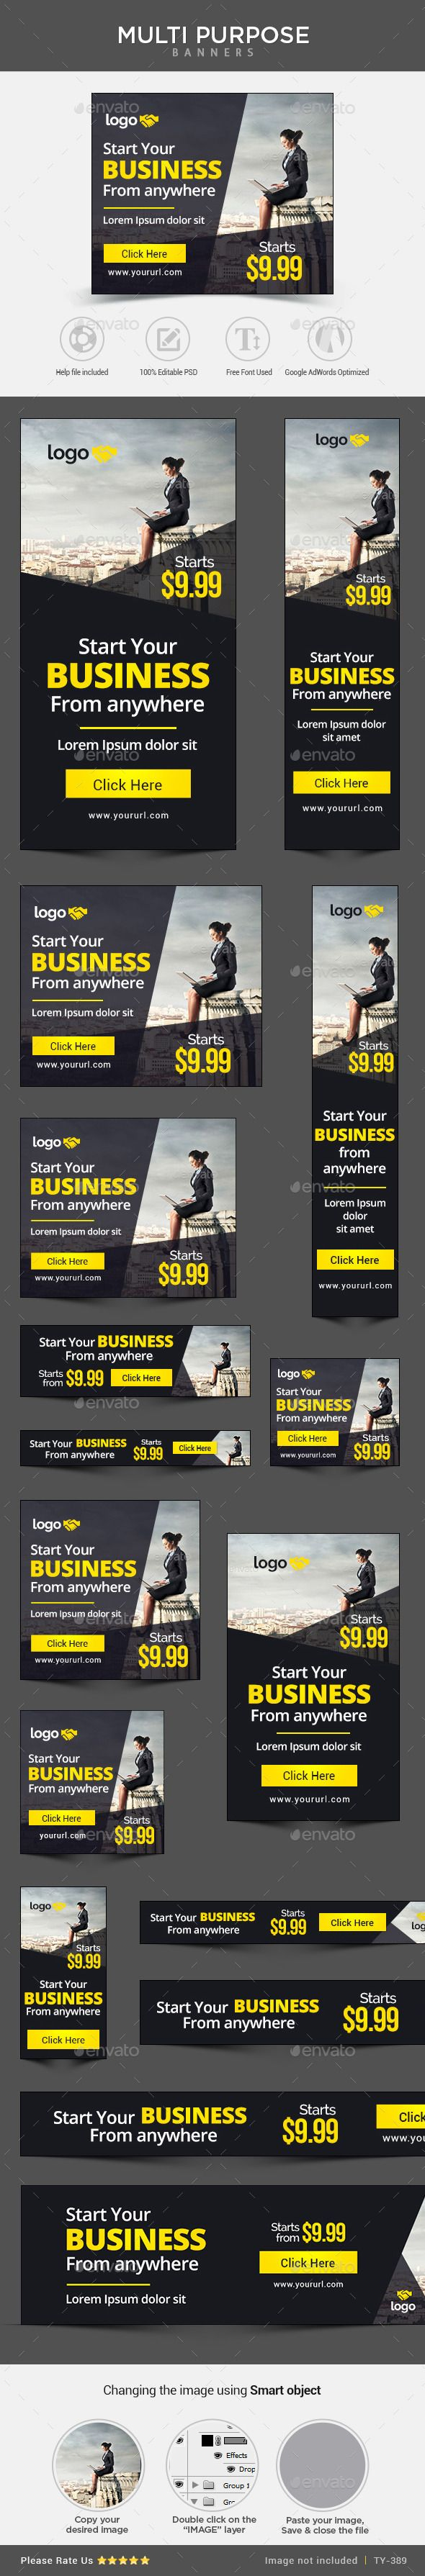 Business Web Banners Template   Download: http://graphicriver.net/item/business-banners-/11056394?ref=ksioks